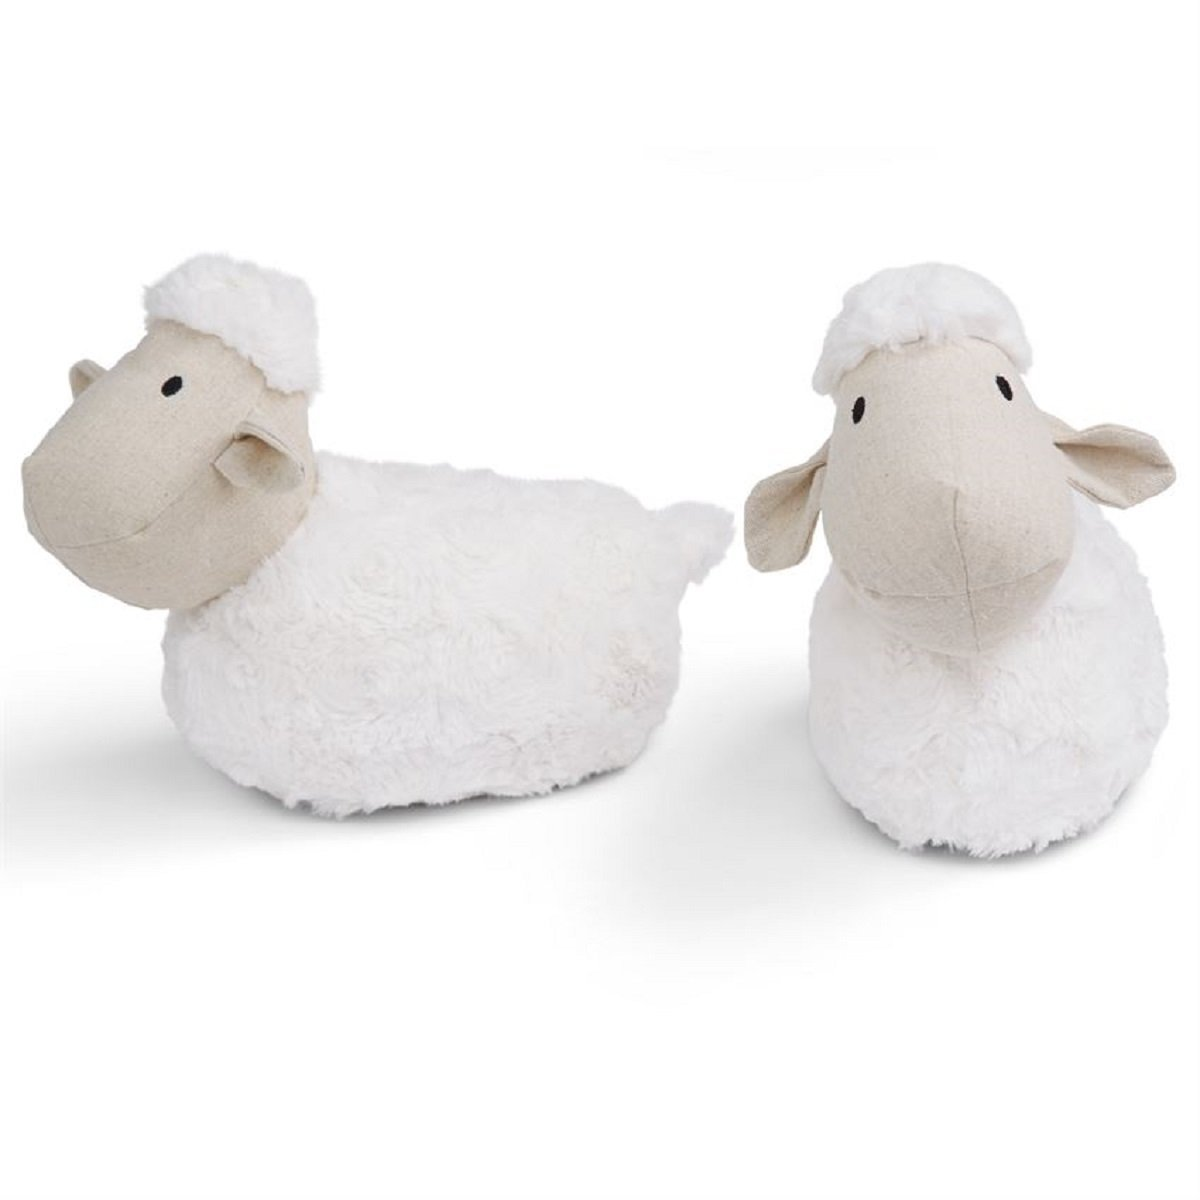 Mud Pie Baby Nursery Decor 2 Piece Weighted Lamb Bookends